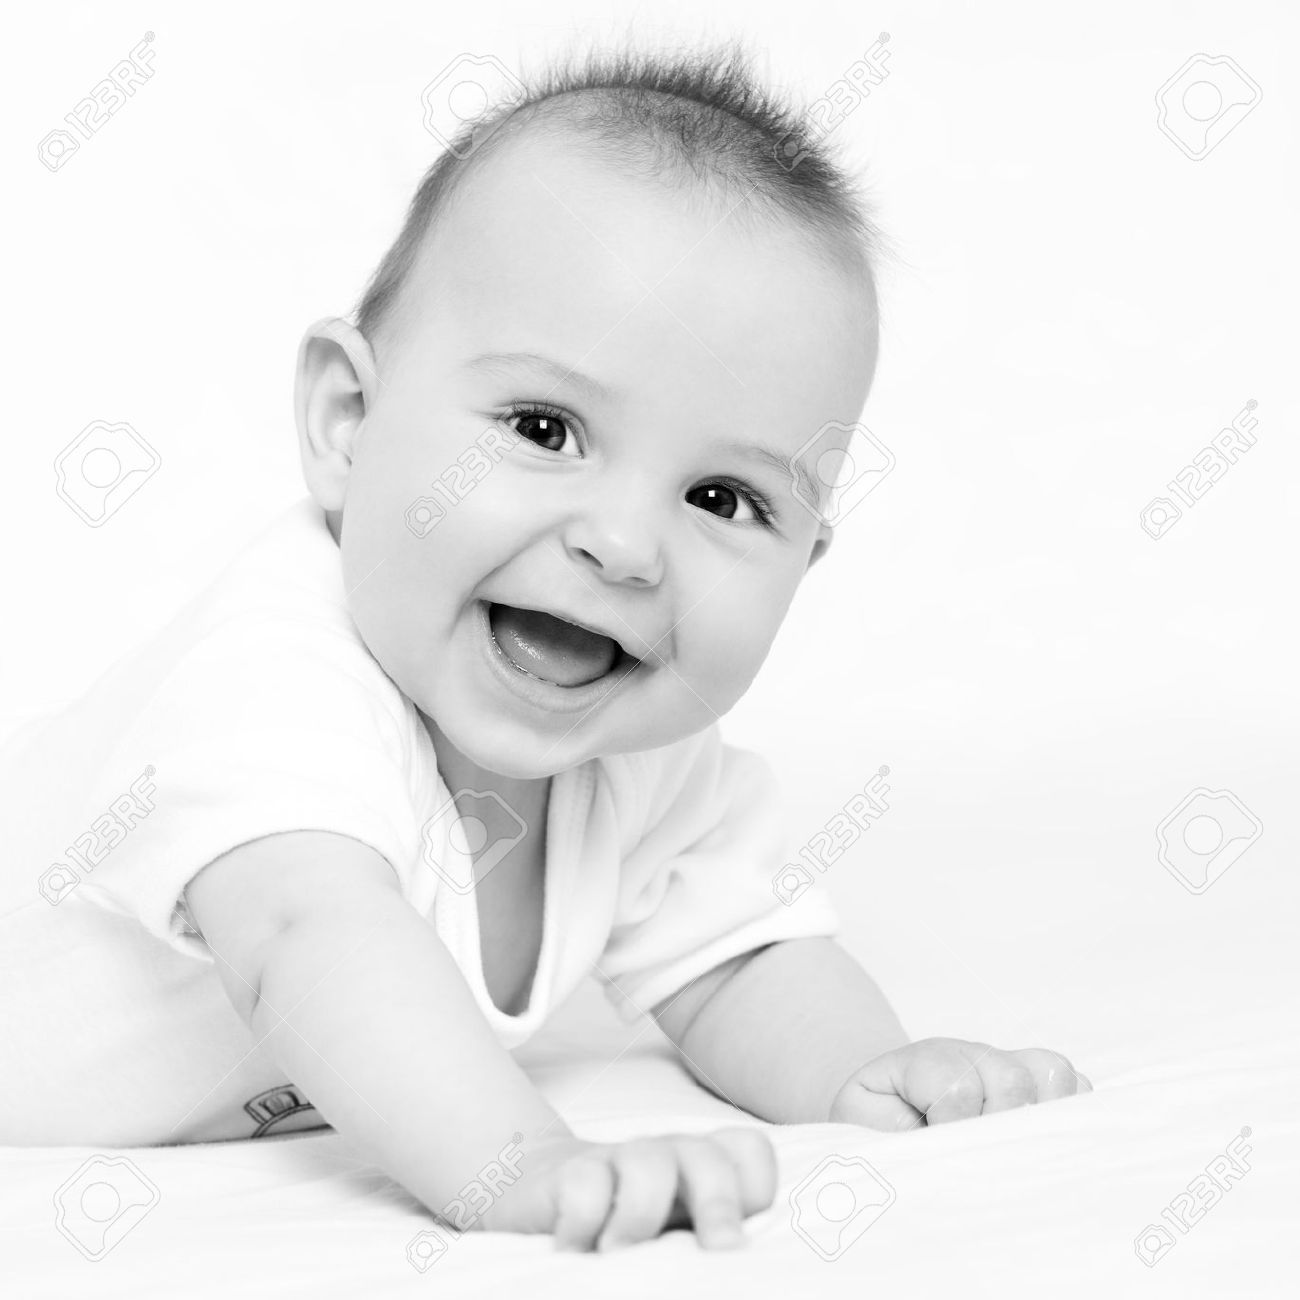 Musica Para Bebes De 4 Meses Image Result For Black And White Baby Portraits Foto